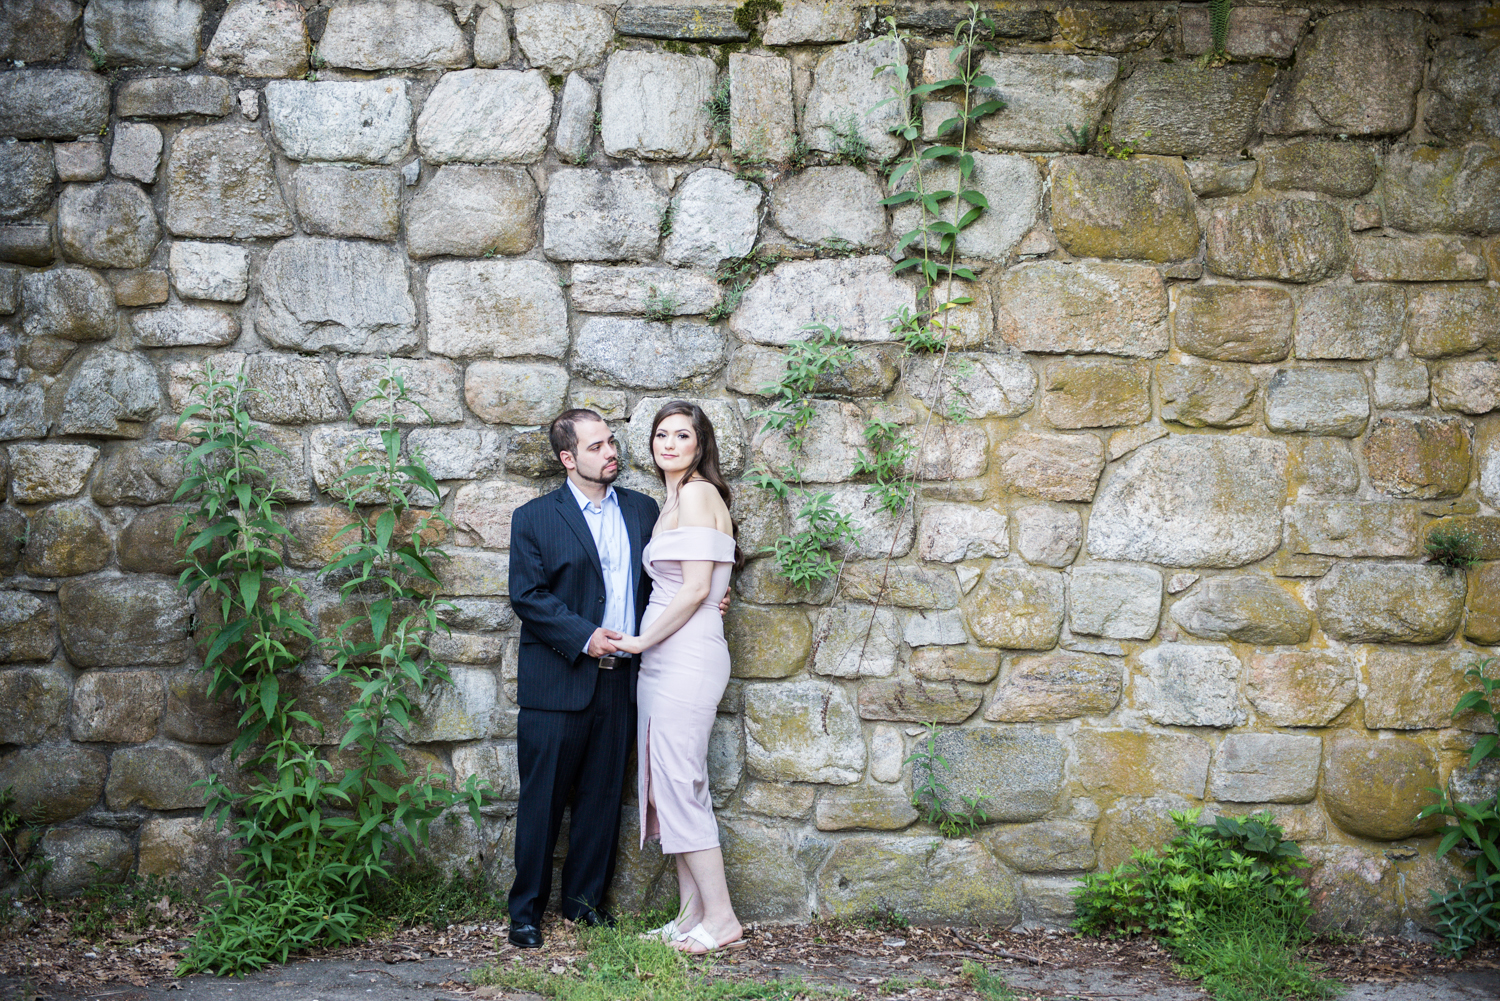 tods-point-park-engagement-session-greenwich-ct-2.jpg